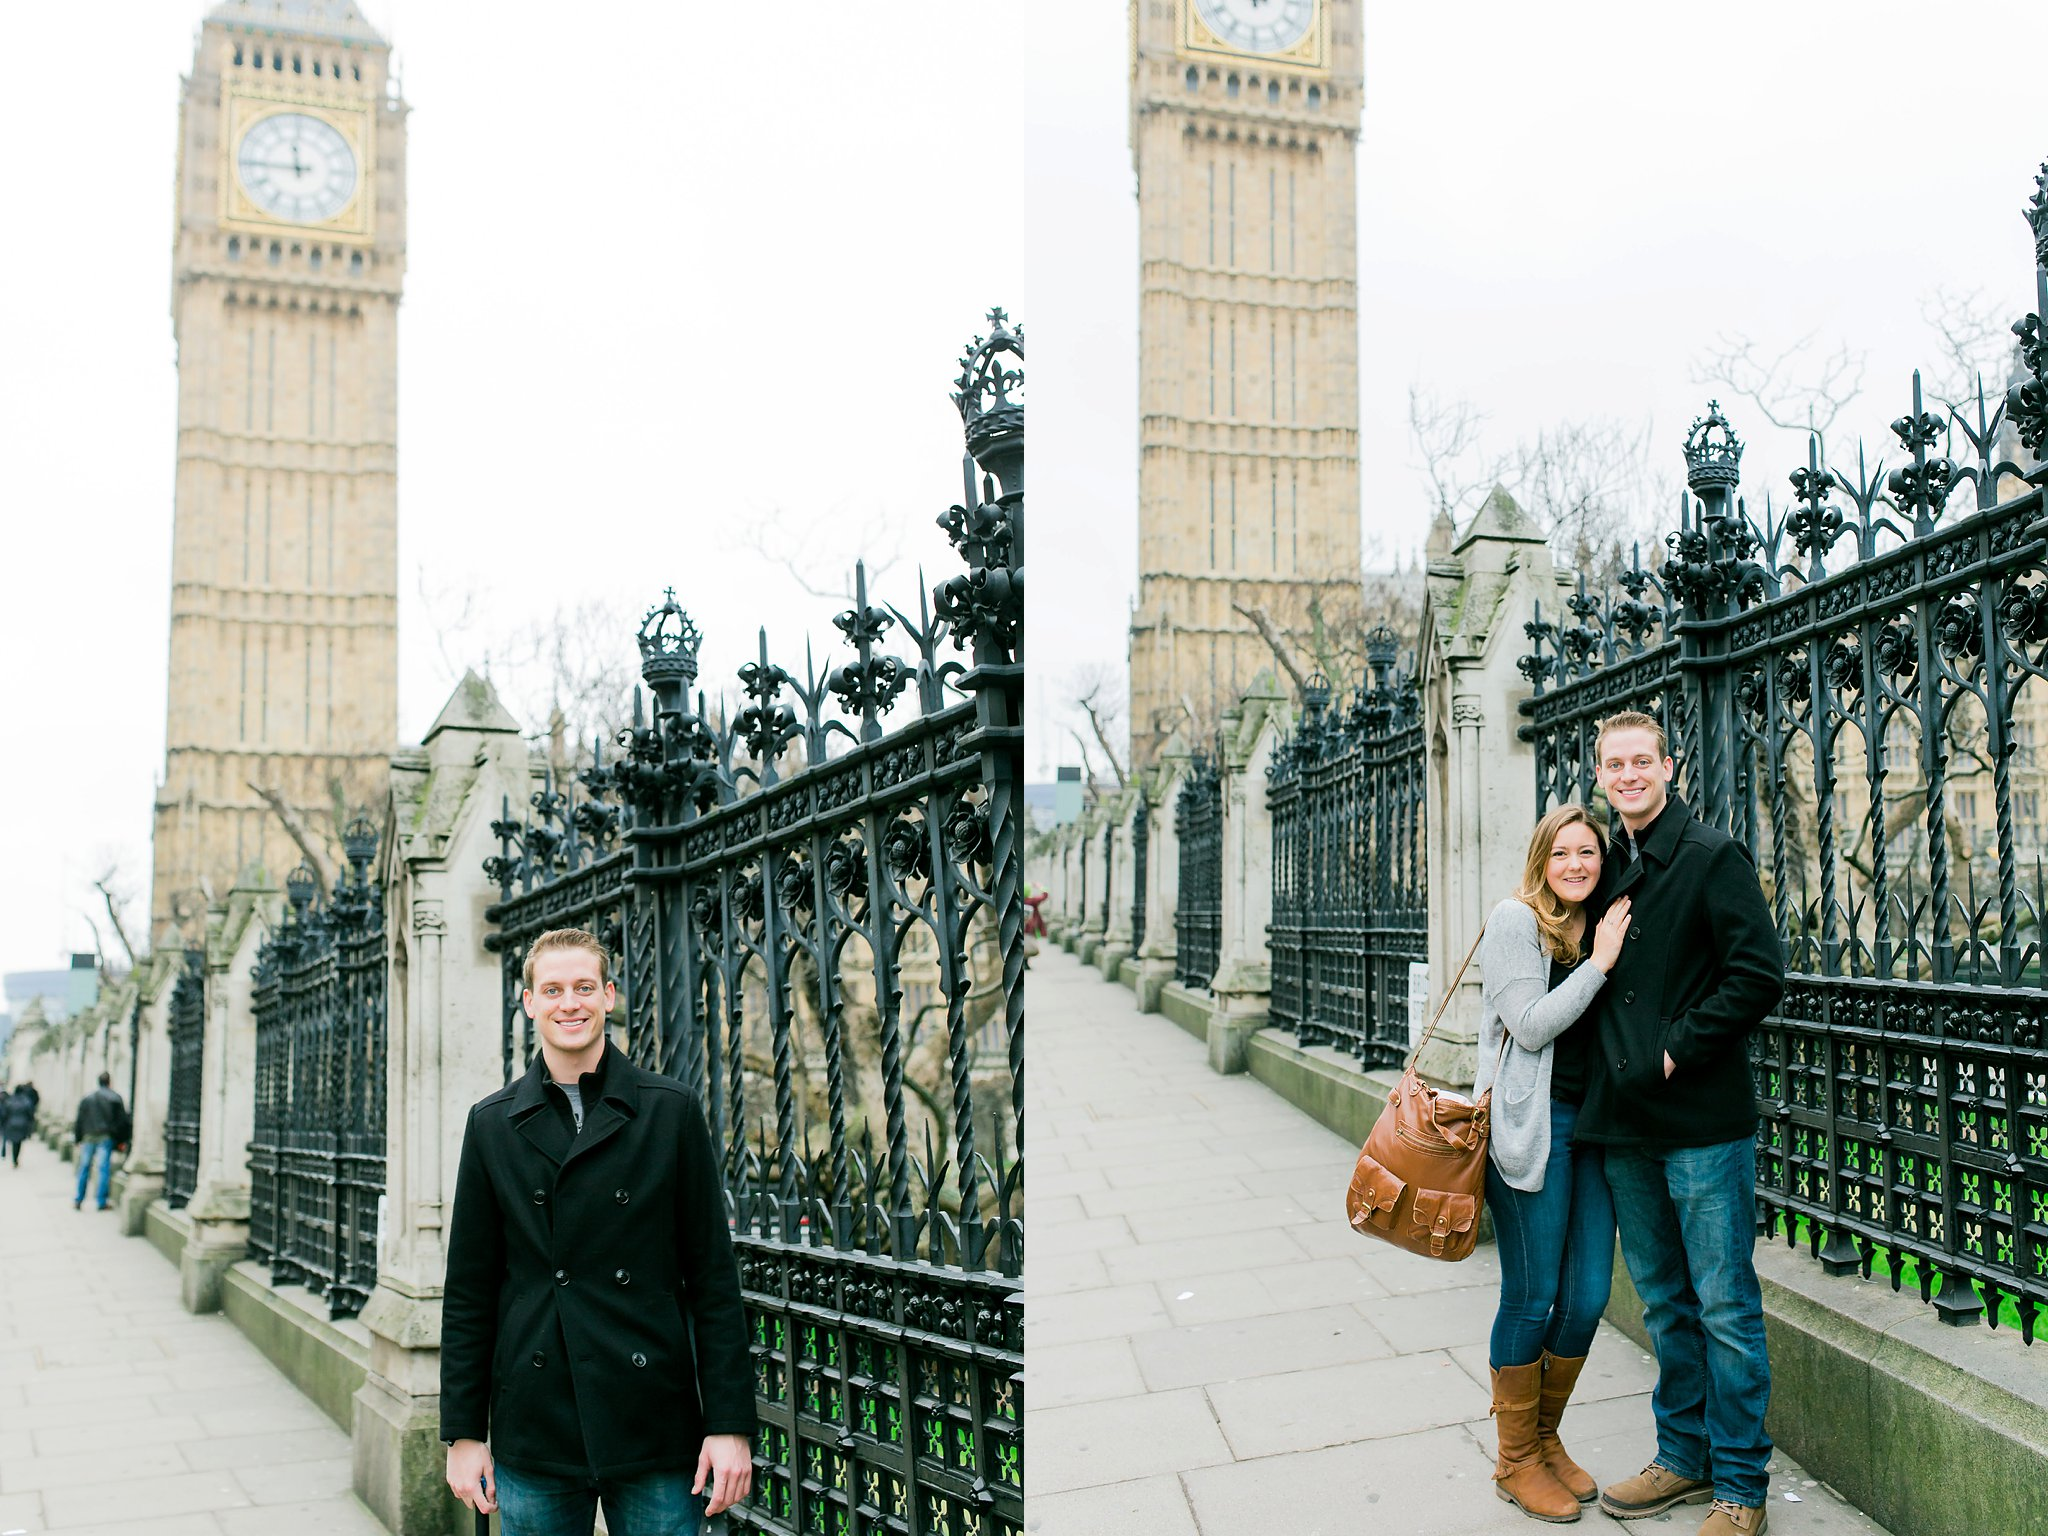 London Part II Westminster Abbey Tower Bridge Tower of London Big Ben-1791.jpg